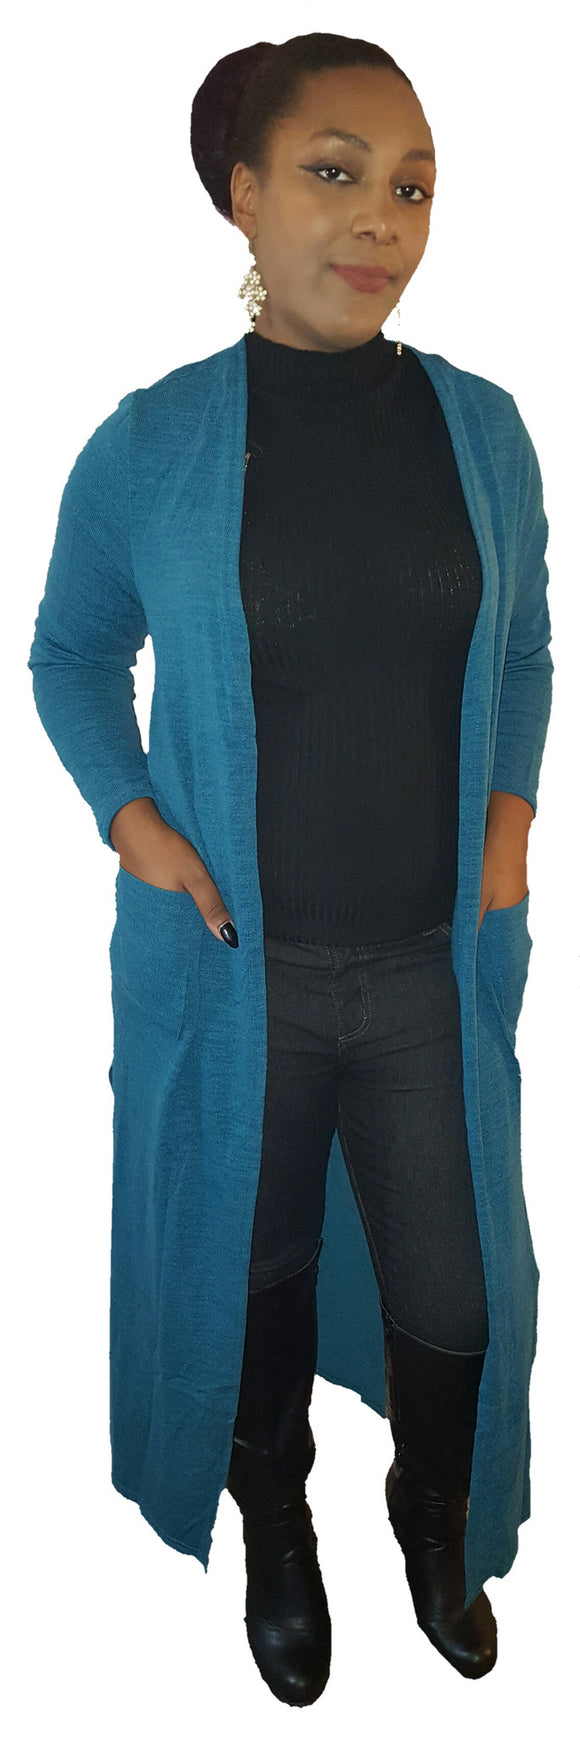 Teal long cardigan - Endless Fashions LLC